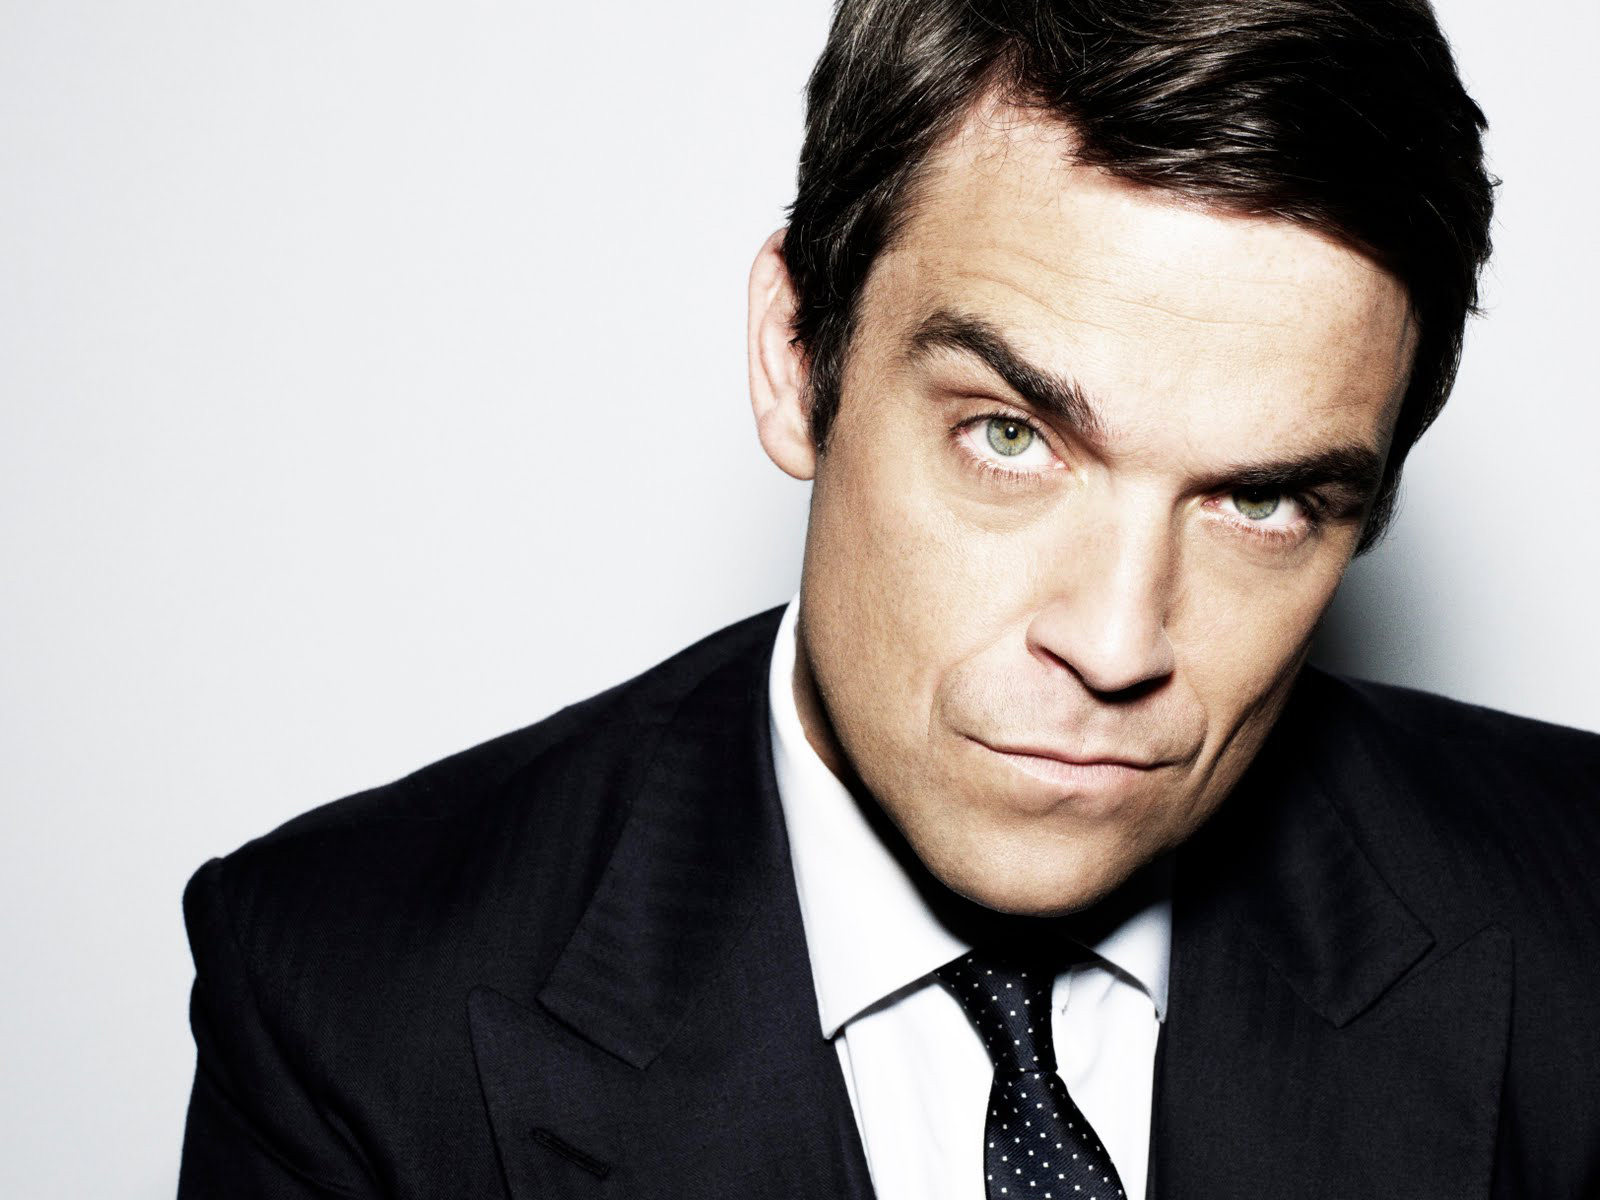 http://1.bp.blogspot.com/-Md2sfDJ7AjA/TuXKBZwgA5I/AAAAAAAAAoo/MHi654iTRfk/s1600/Robbie-Williams-pictures-desktop-Wallpapers-HD-photo-images-1.jpg